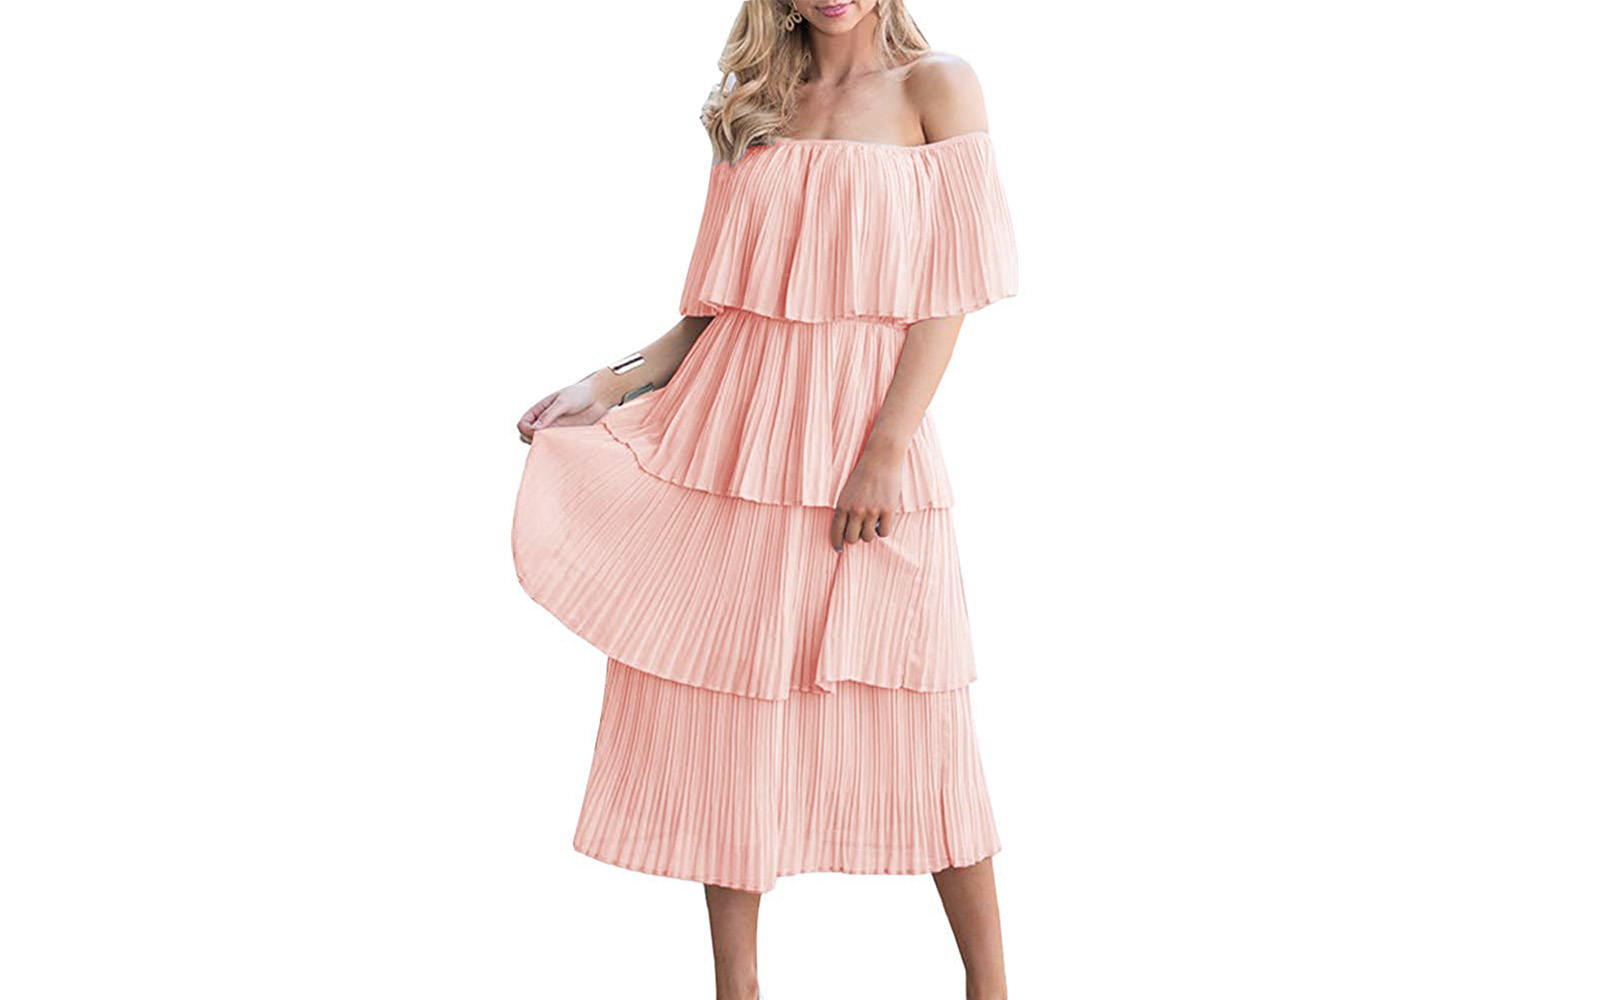 Viral Ruffle Dress from Amazon